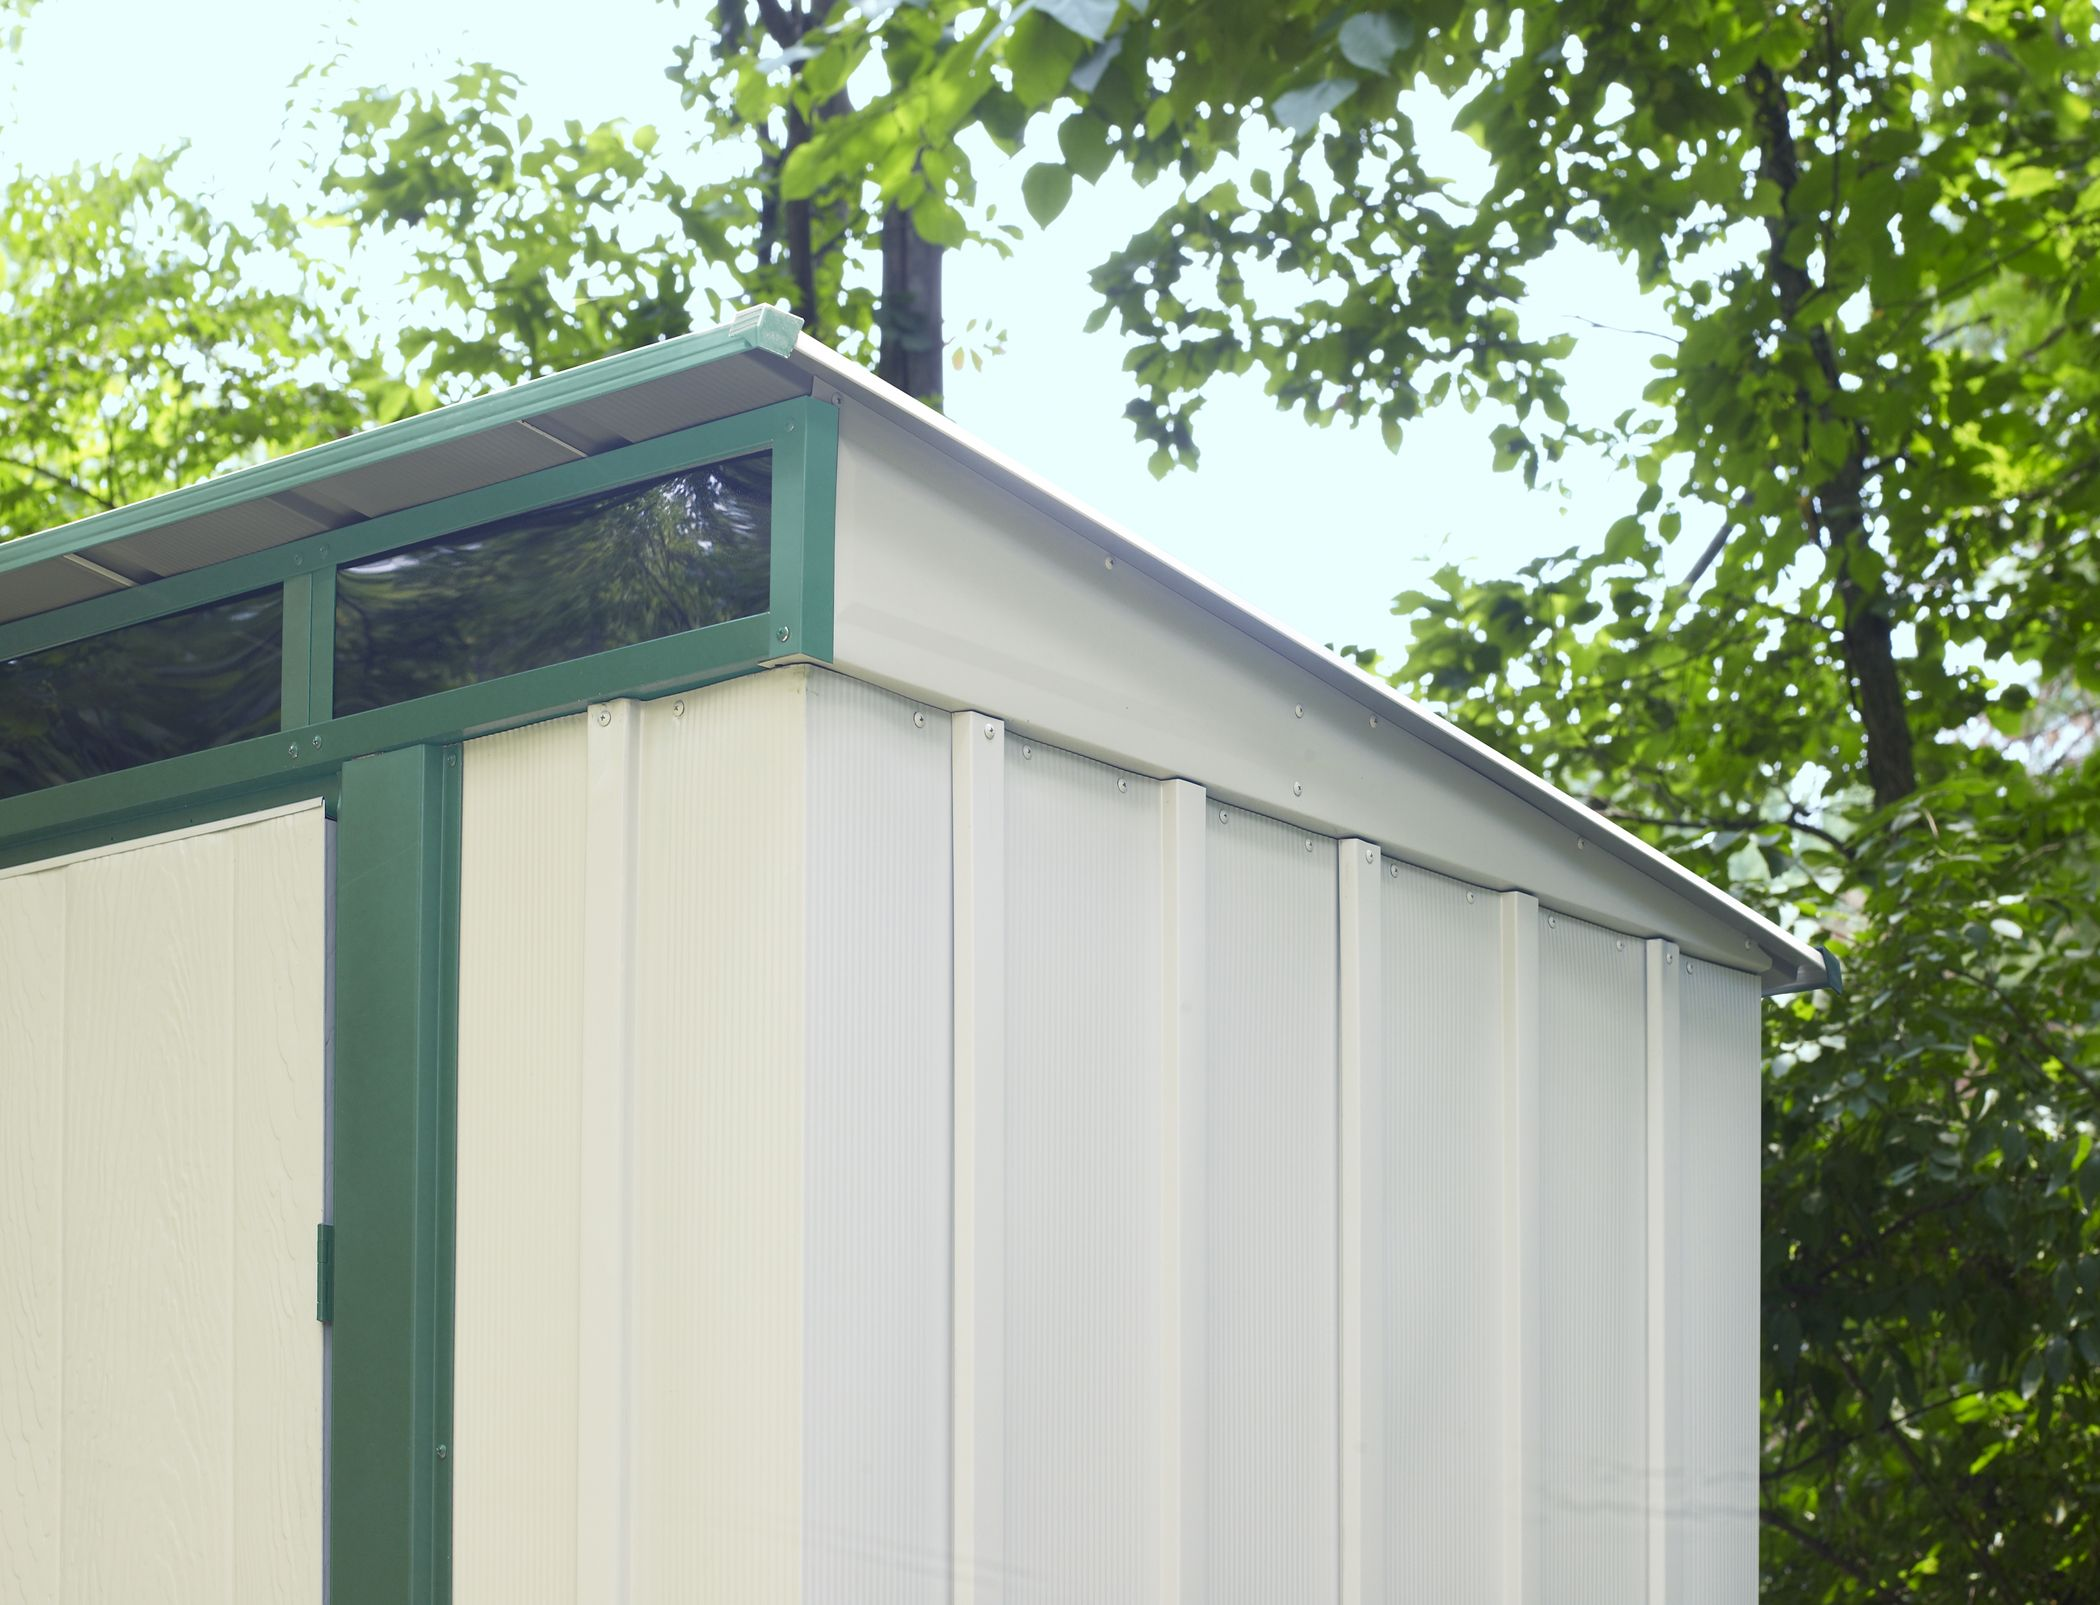 The Sloped Roof Allows For This Steel Storage Shed To Be Placed Behind A  Garage,